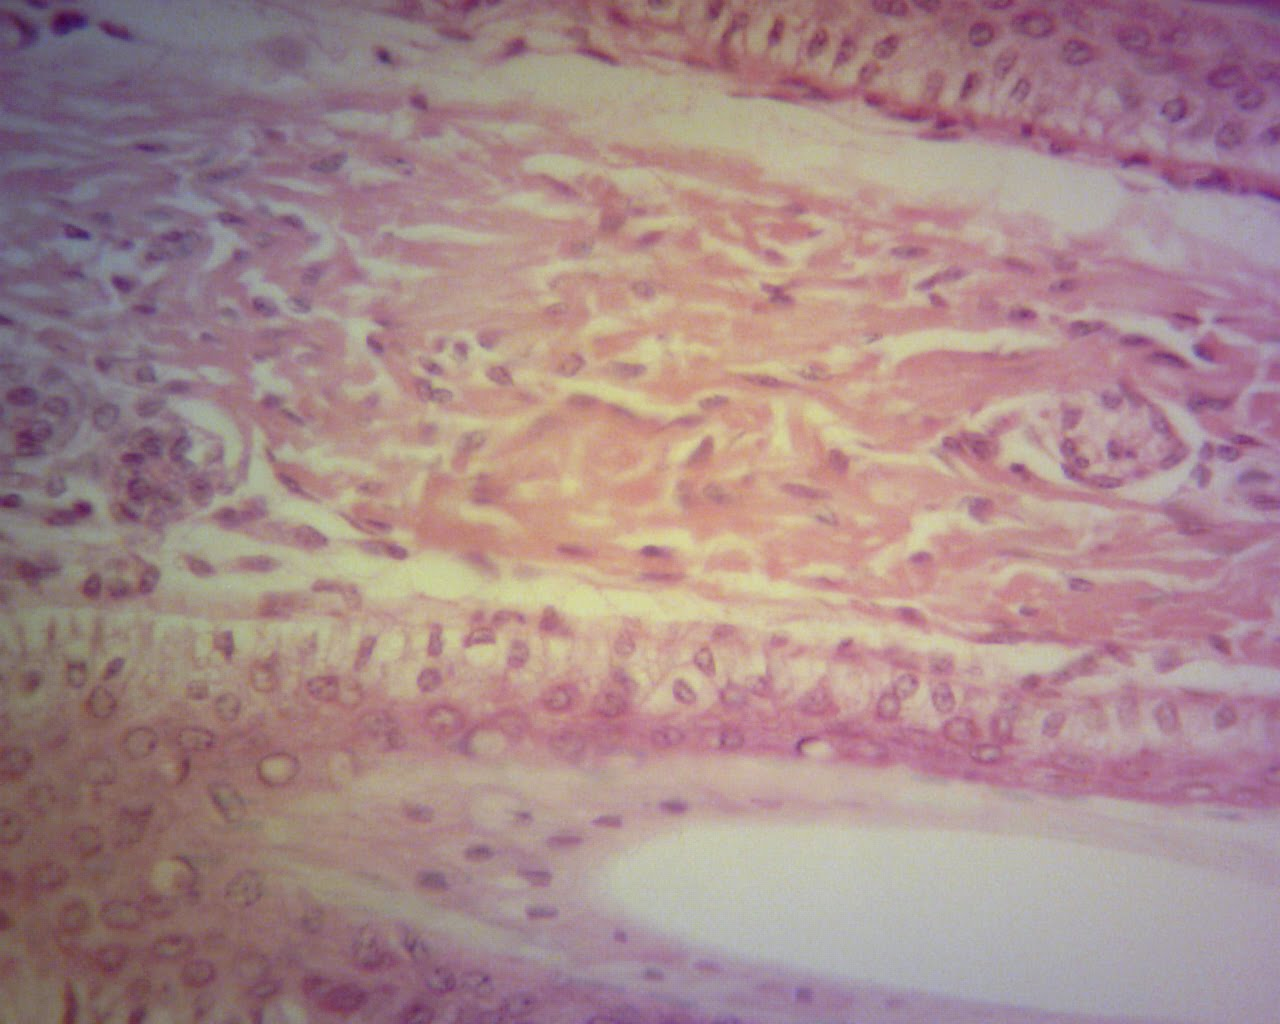 fibrous tissue Fibrosis is the formation of excess fibrous connective tissue in an organ or tissue in a reparative or reactive process this can be a reactive, benign, or pathological state.